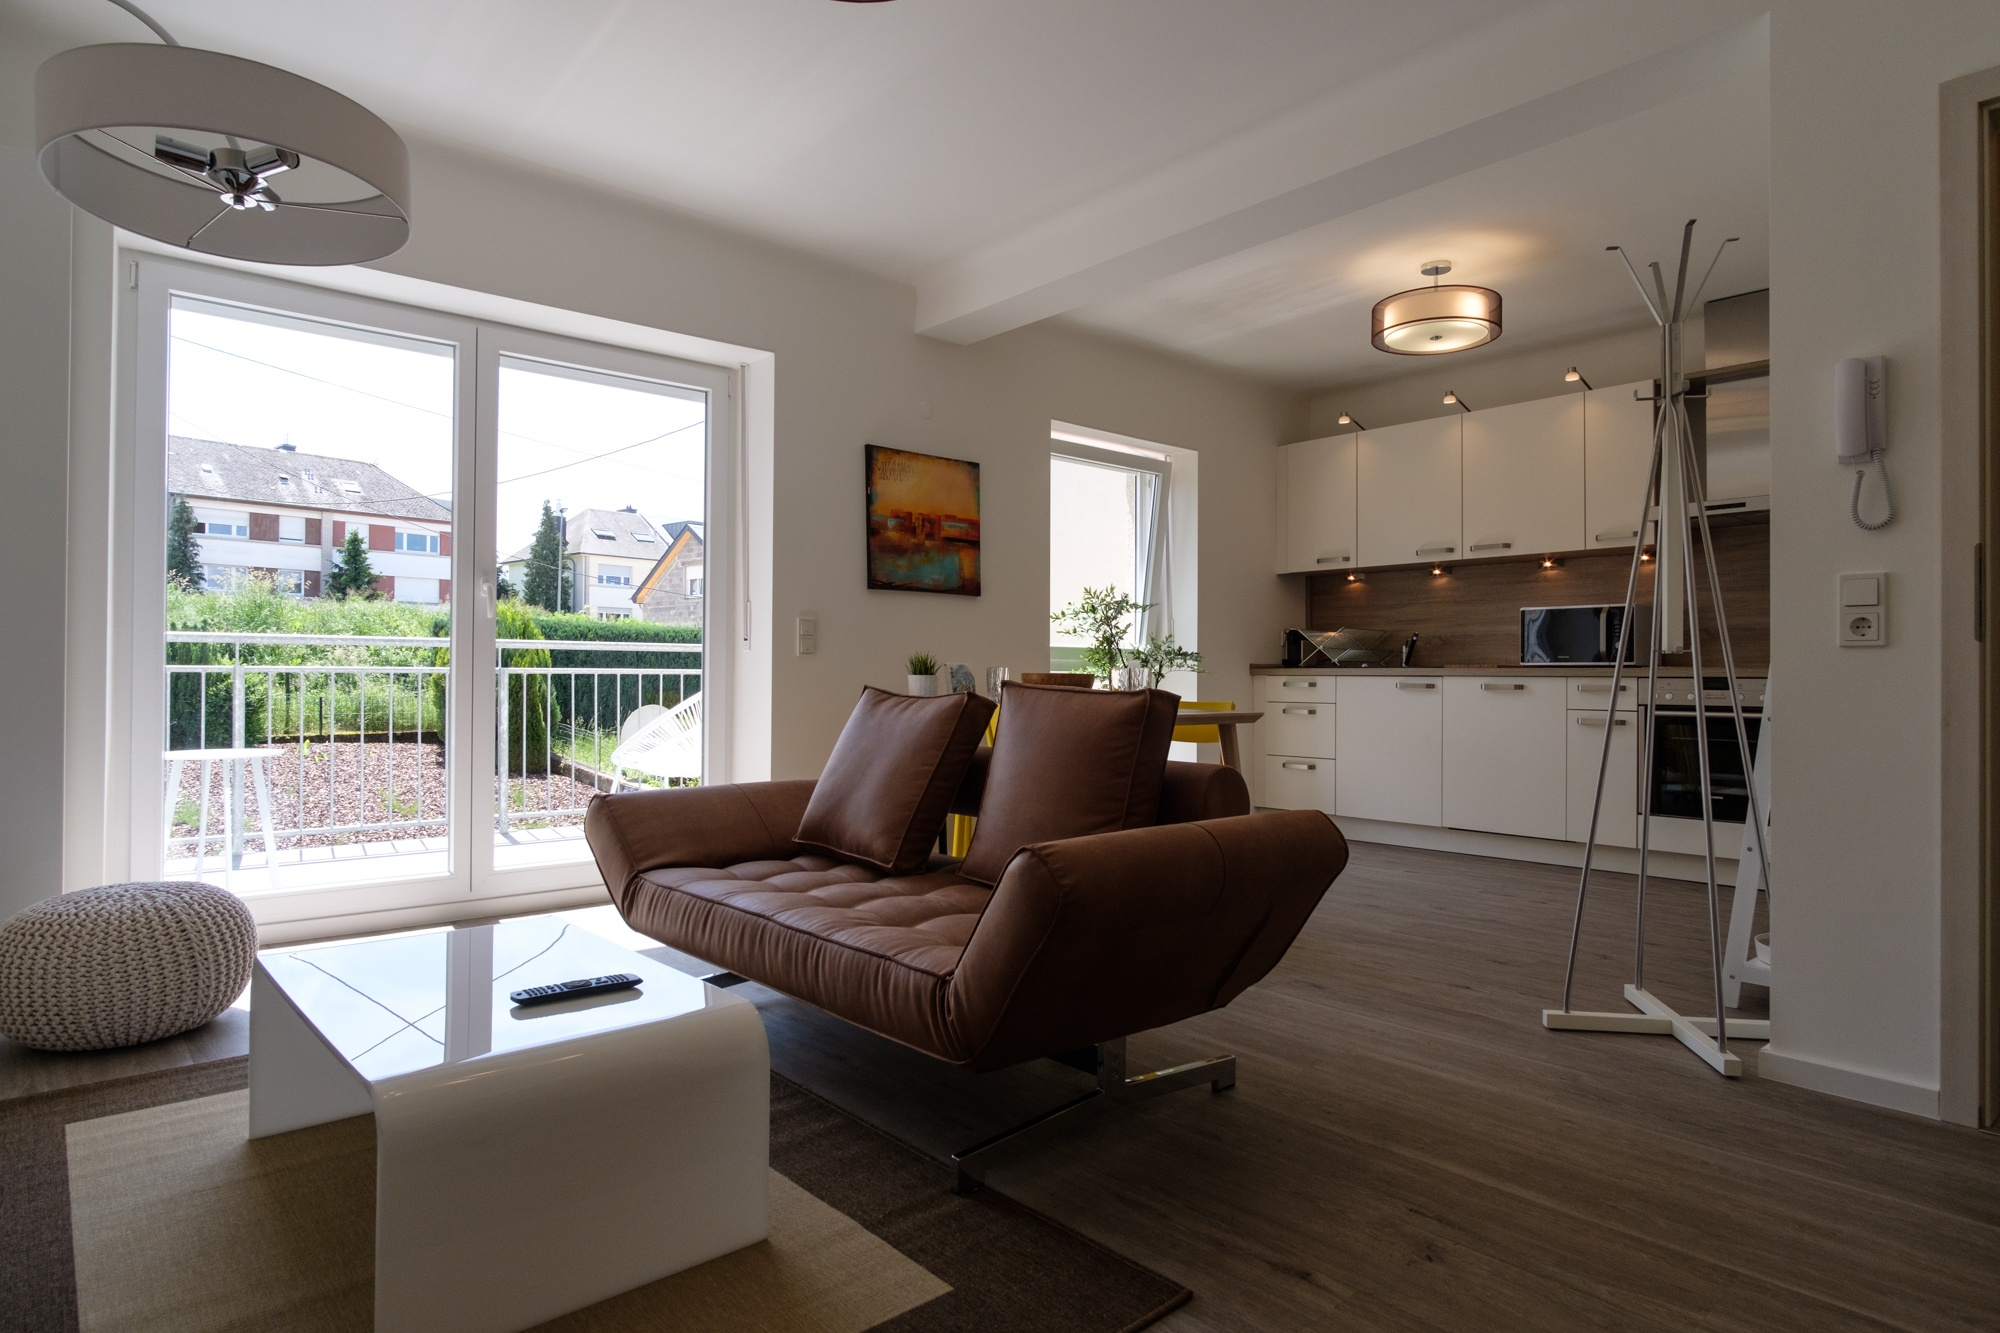 Image of a Dwellworks Corporate Housing apartment